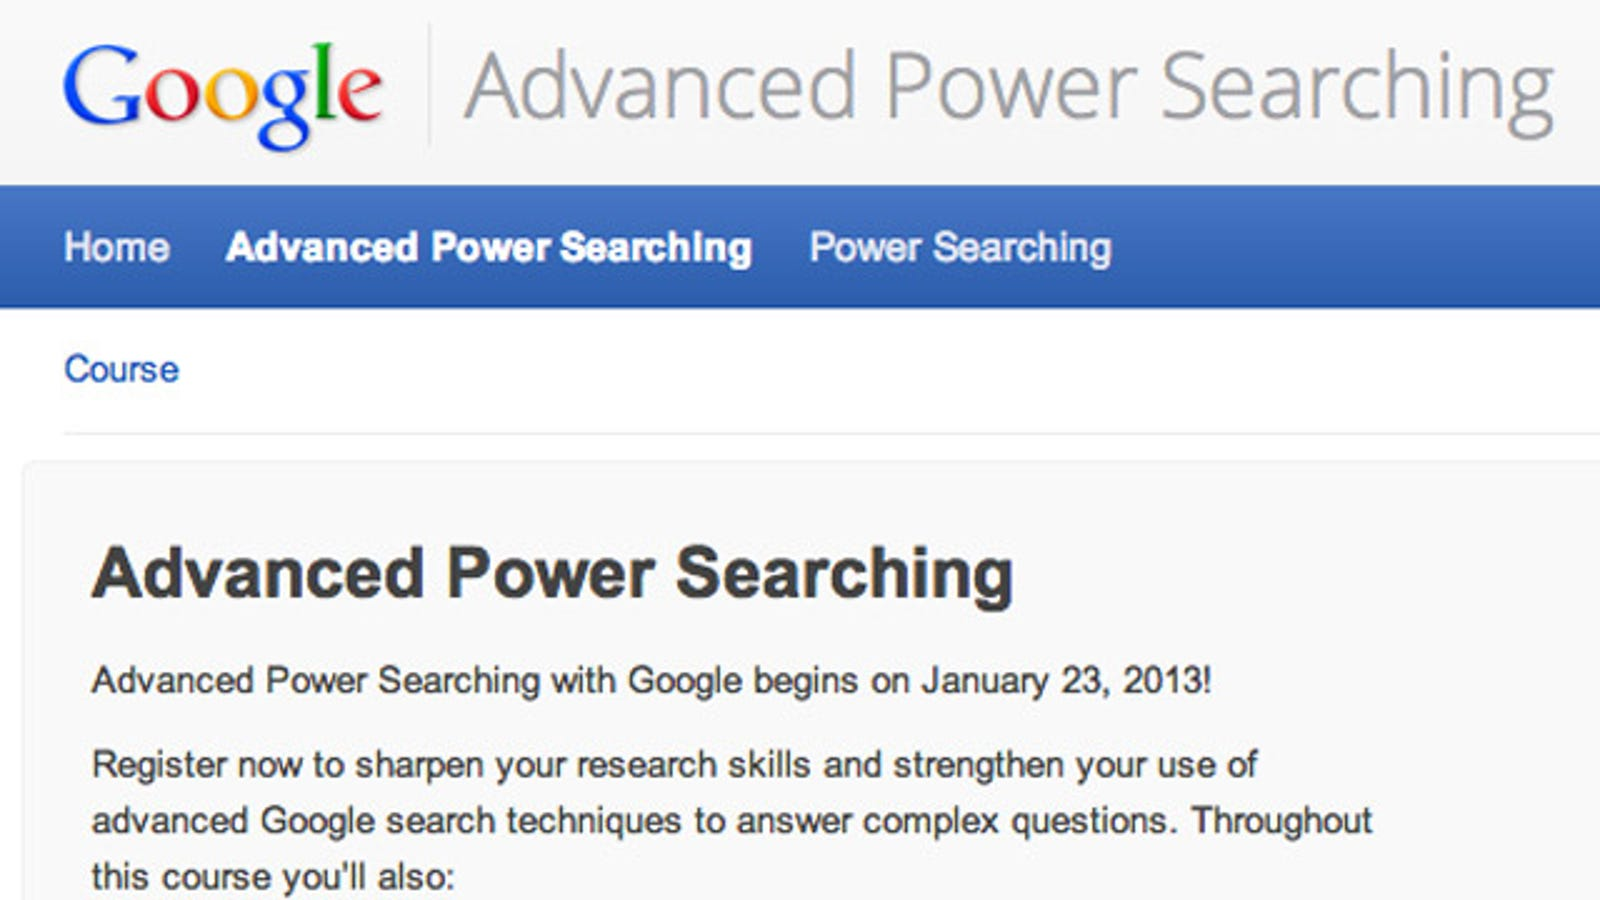 Sign Up For Google's Advanced Power Searching Course And